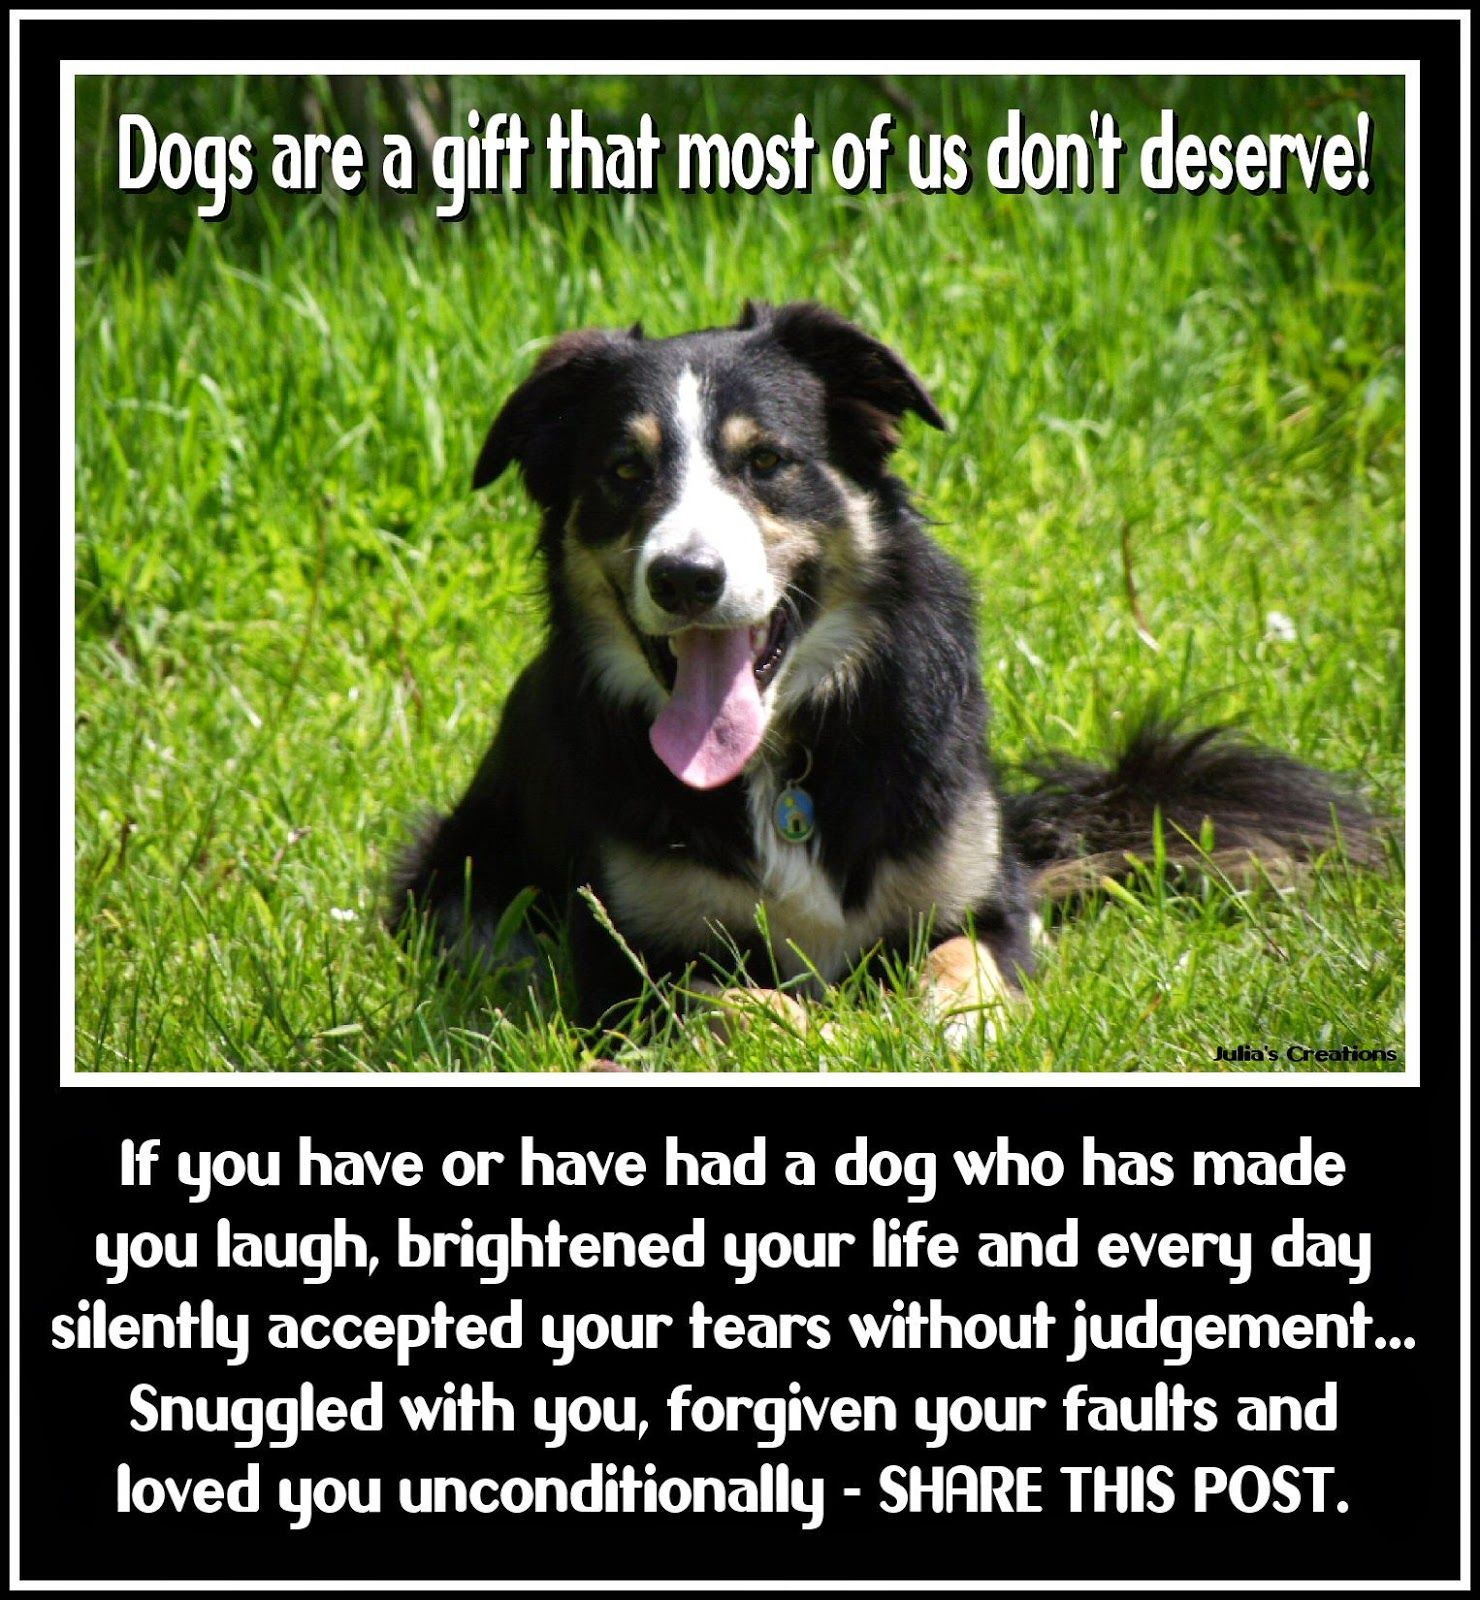 Quotes About Pets And Friendship Julia's Creations If You Have Had A Dog. Animalspets